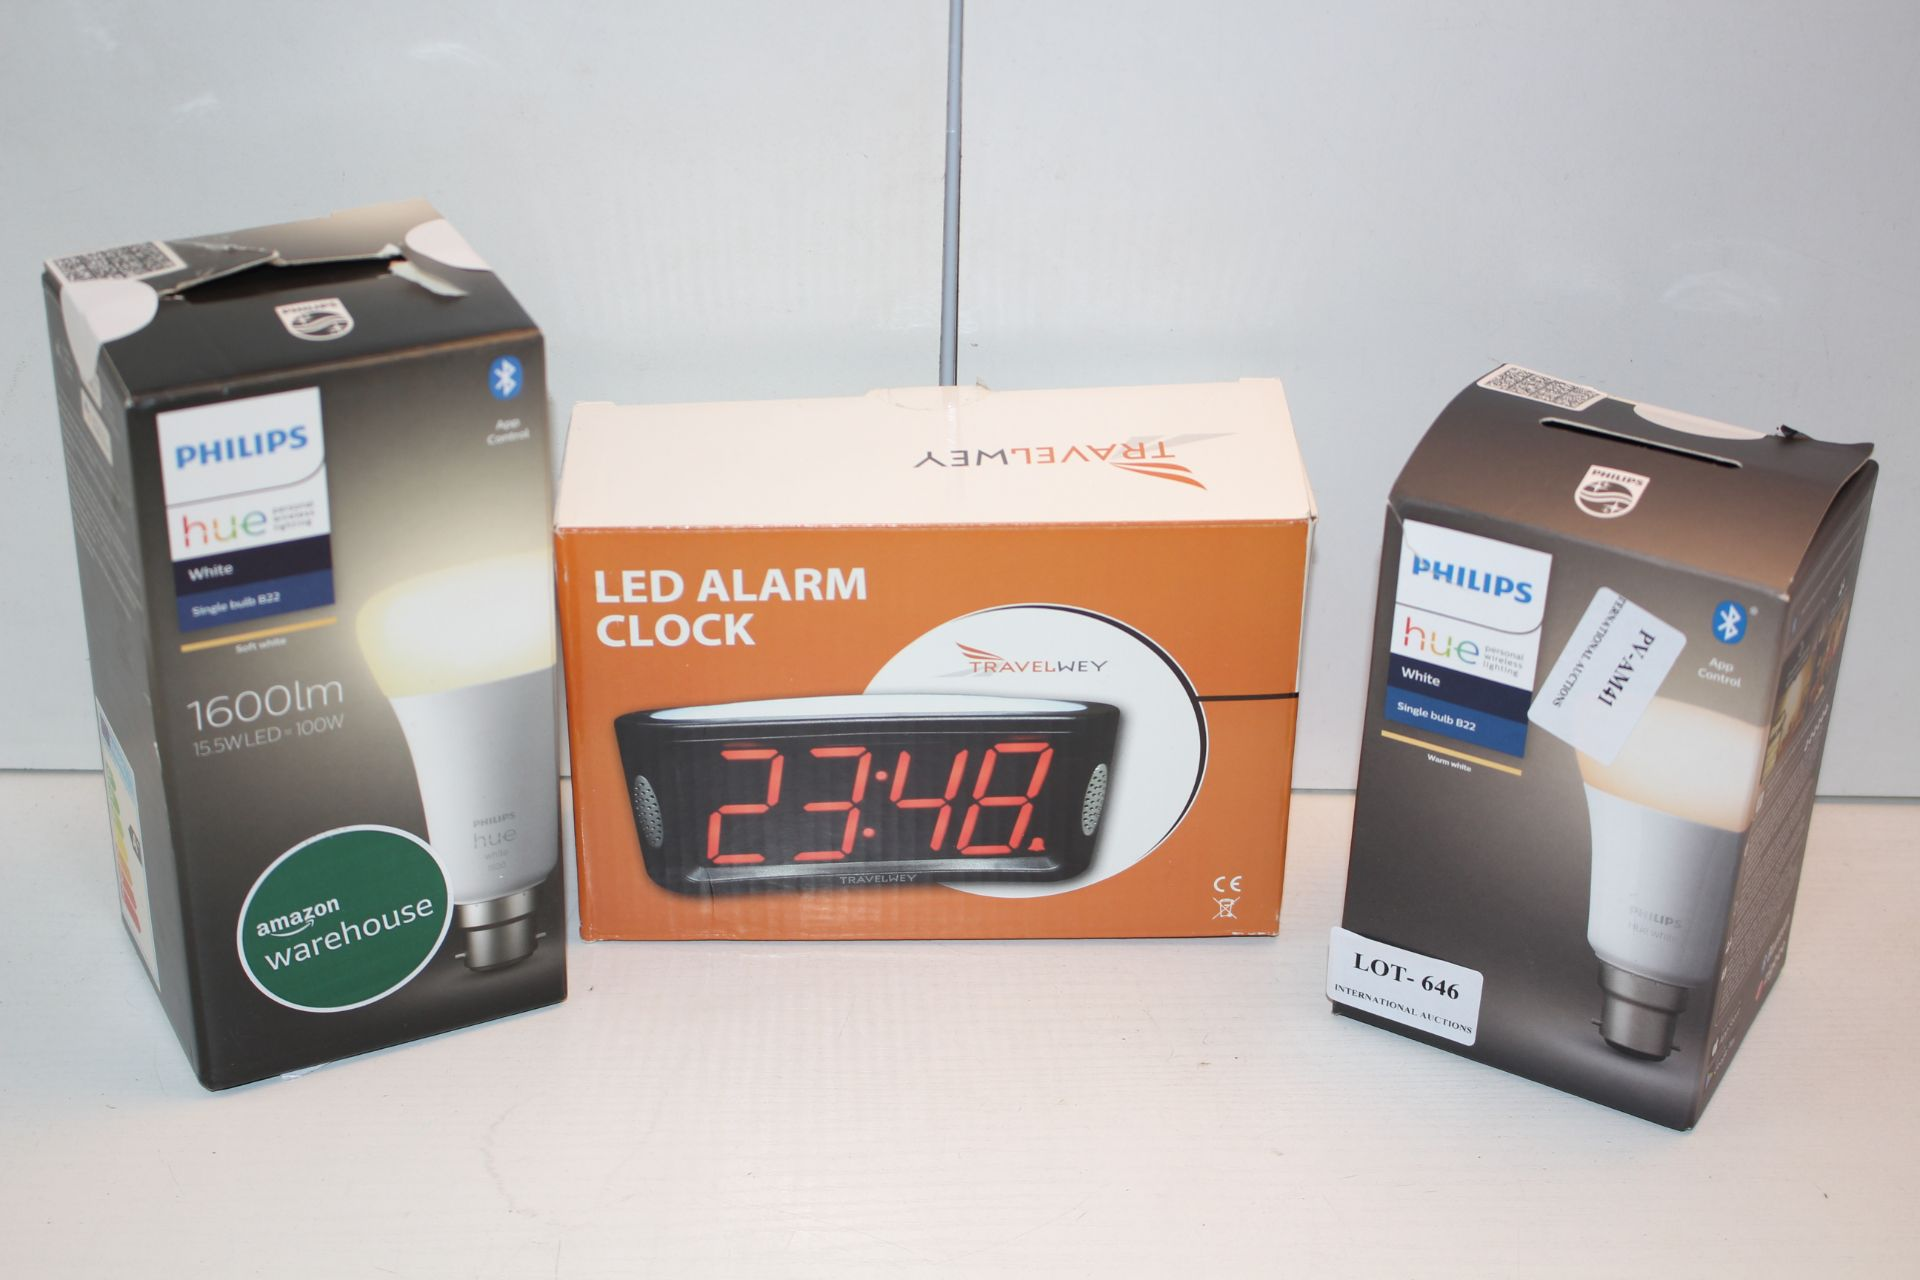 X3 BOXED ITEMS INCLUDING PHILIPS HUE B22 BULBS AND LED ALARM CLOCKCondition ReportAppraisal